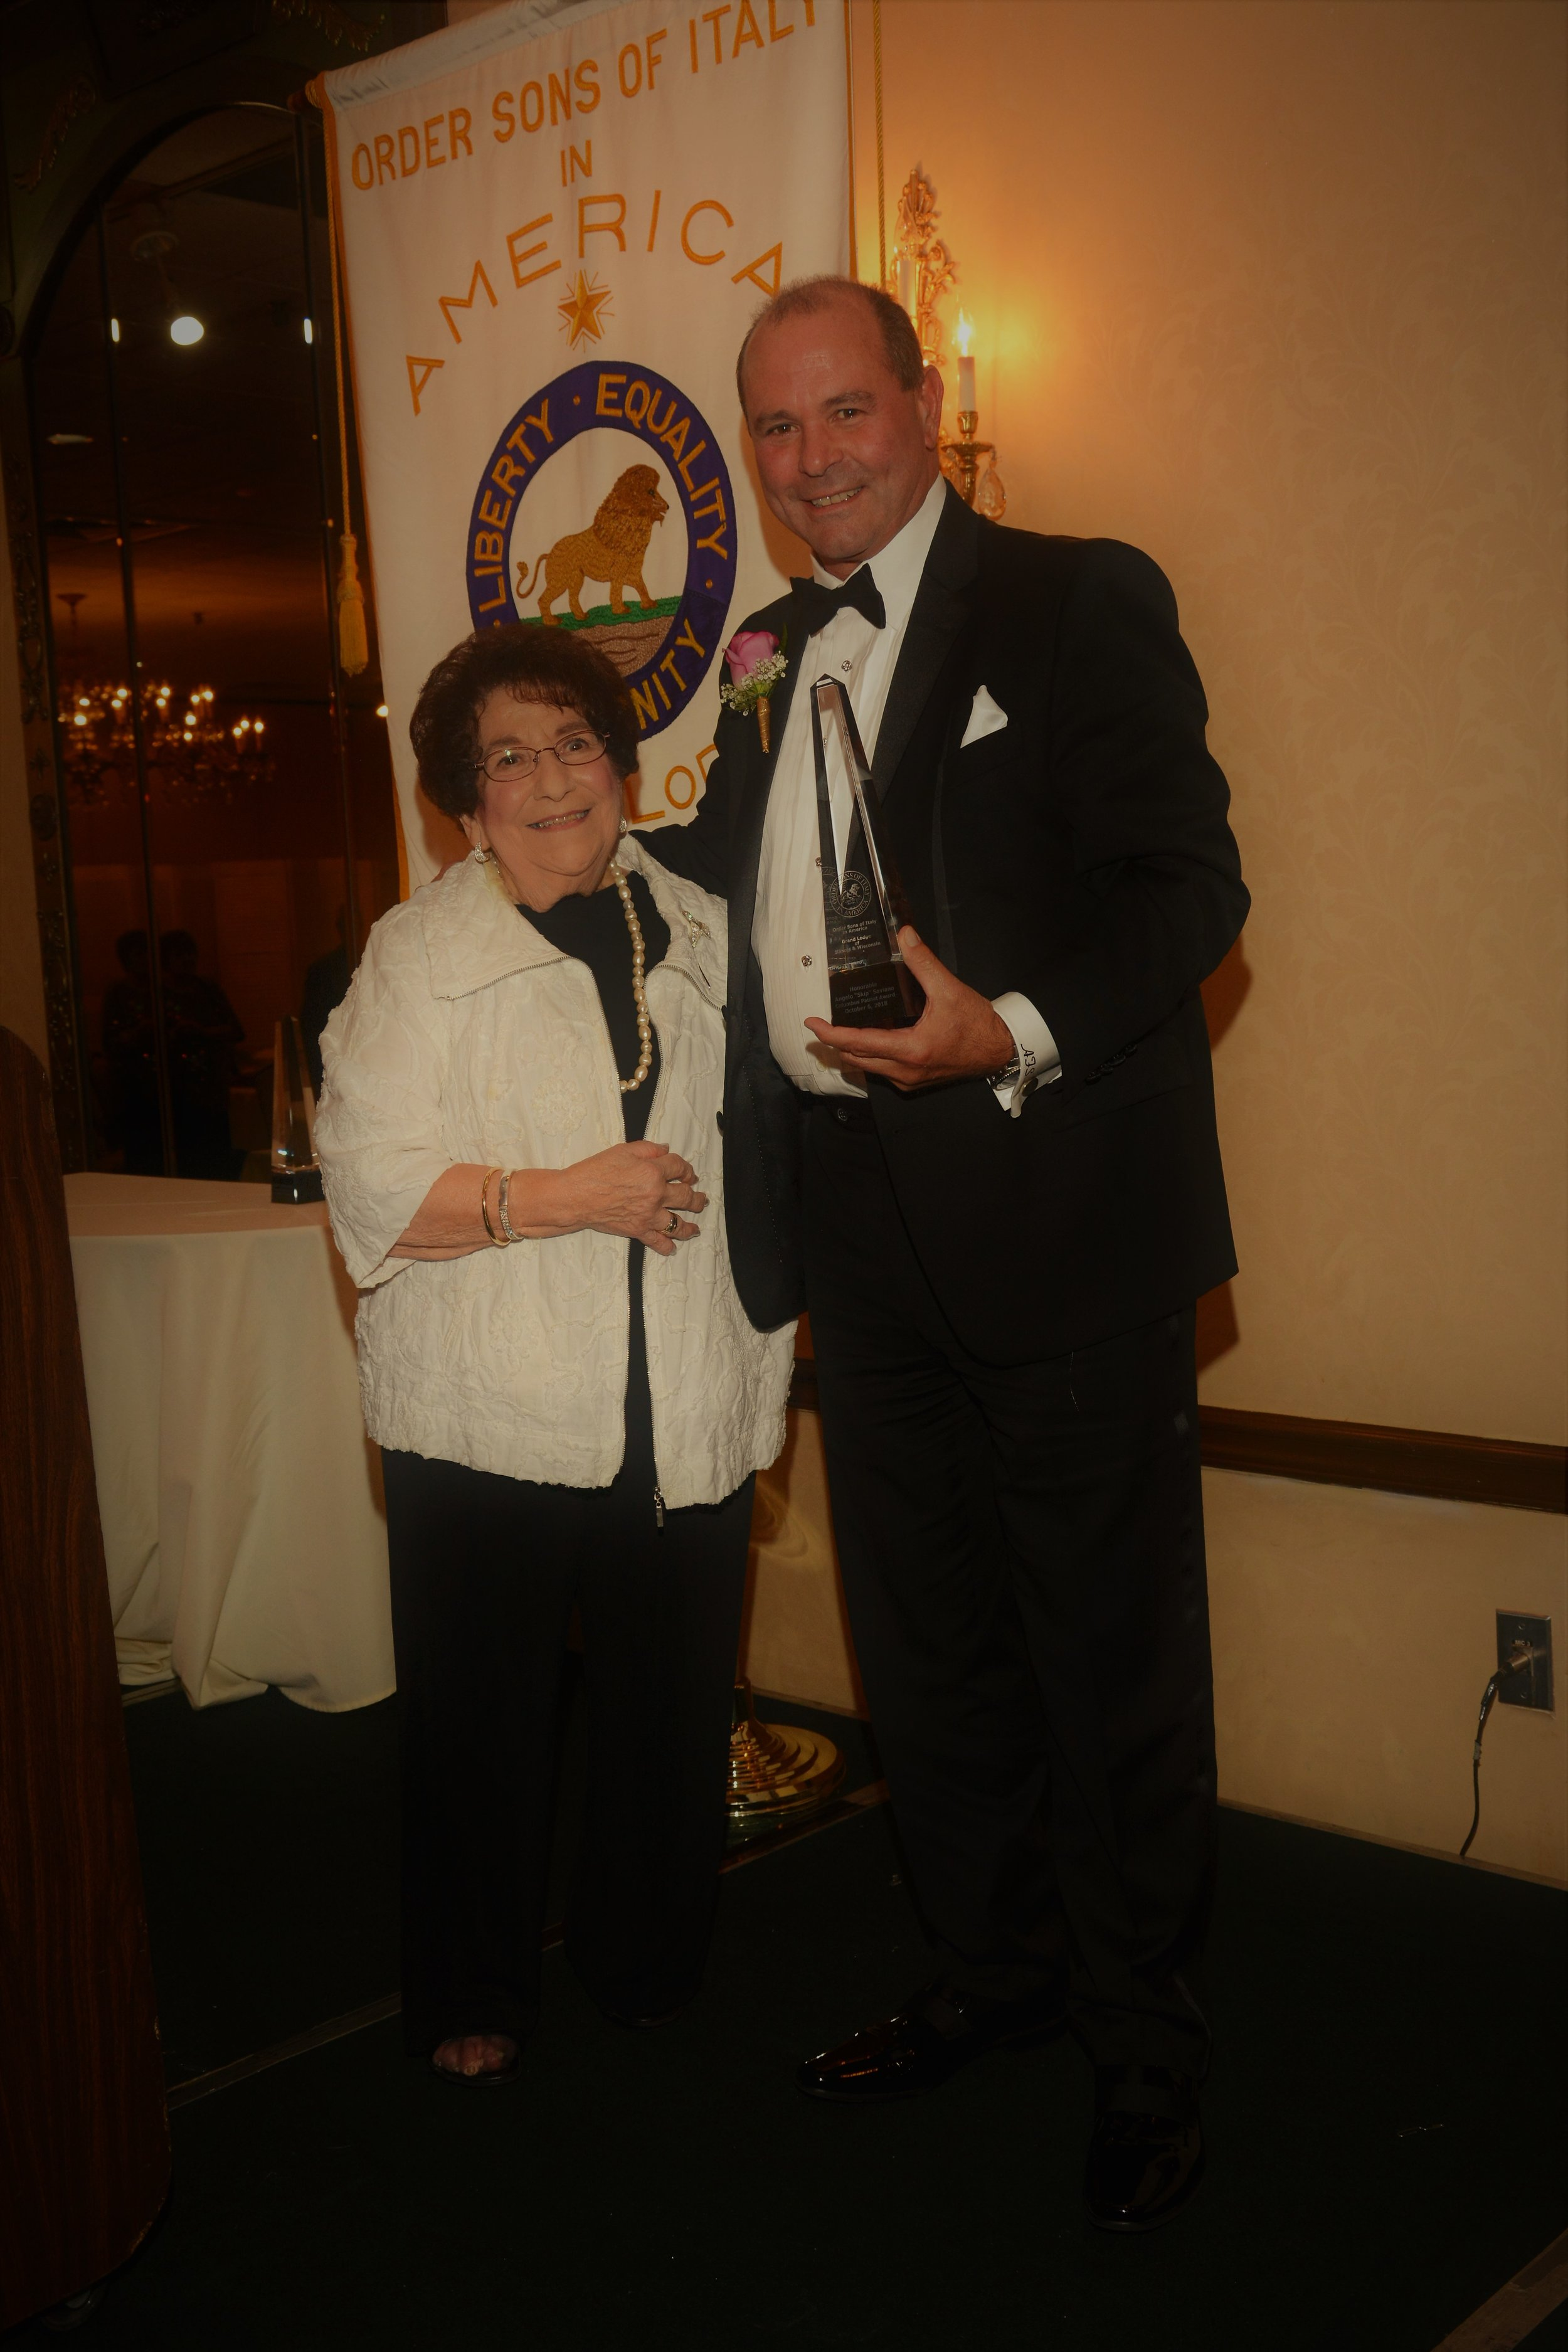 """- Receiving the Columbus Patriot Award was the Honorable Angelo """"Skip"""" Saviano, President of the Village of Elmwood Park, Illinois. He has been a proven and trusted leader in the Elmwood community for over 25 years. He was honored for his many years of public service and leadership in the Illinois House of Representatives, where he recently retired as Assistant Minority Leader.He has sponsored and supported legislation to aid the elderly, children and people of all backgrounds. Saviano is known as a staunch advocate for senior citizens and individuals with special needs. He is recognized as a champion for individuals diagnosed with Autism Spectrum Disorder. He is a strong supporter of public safety."""